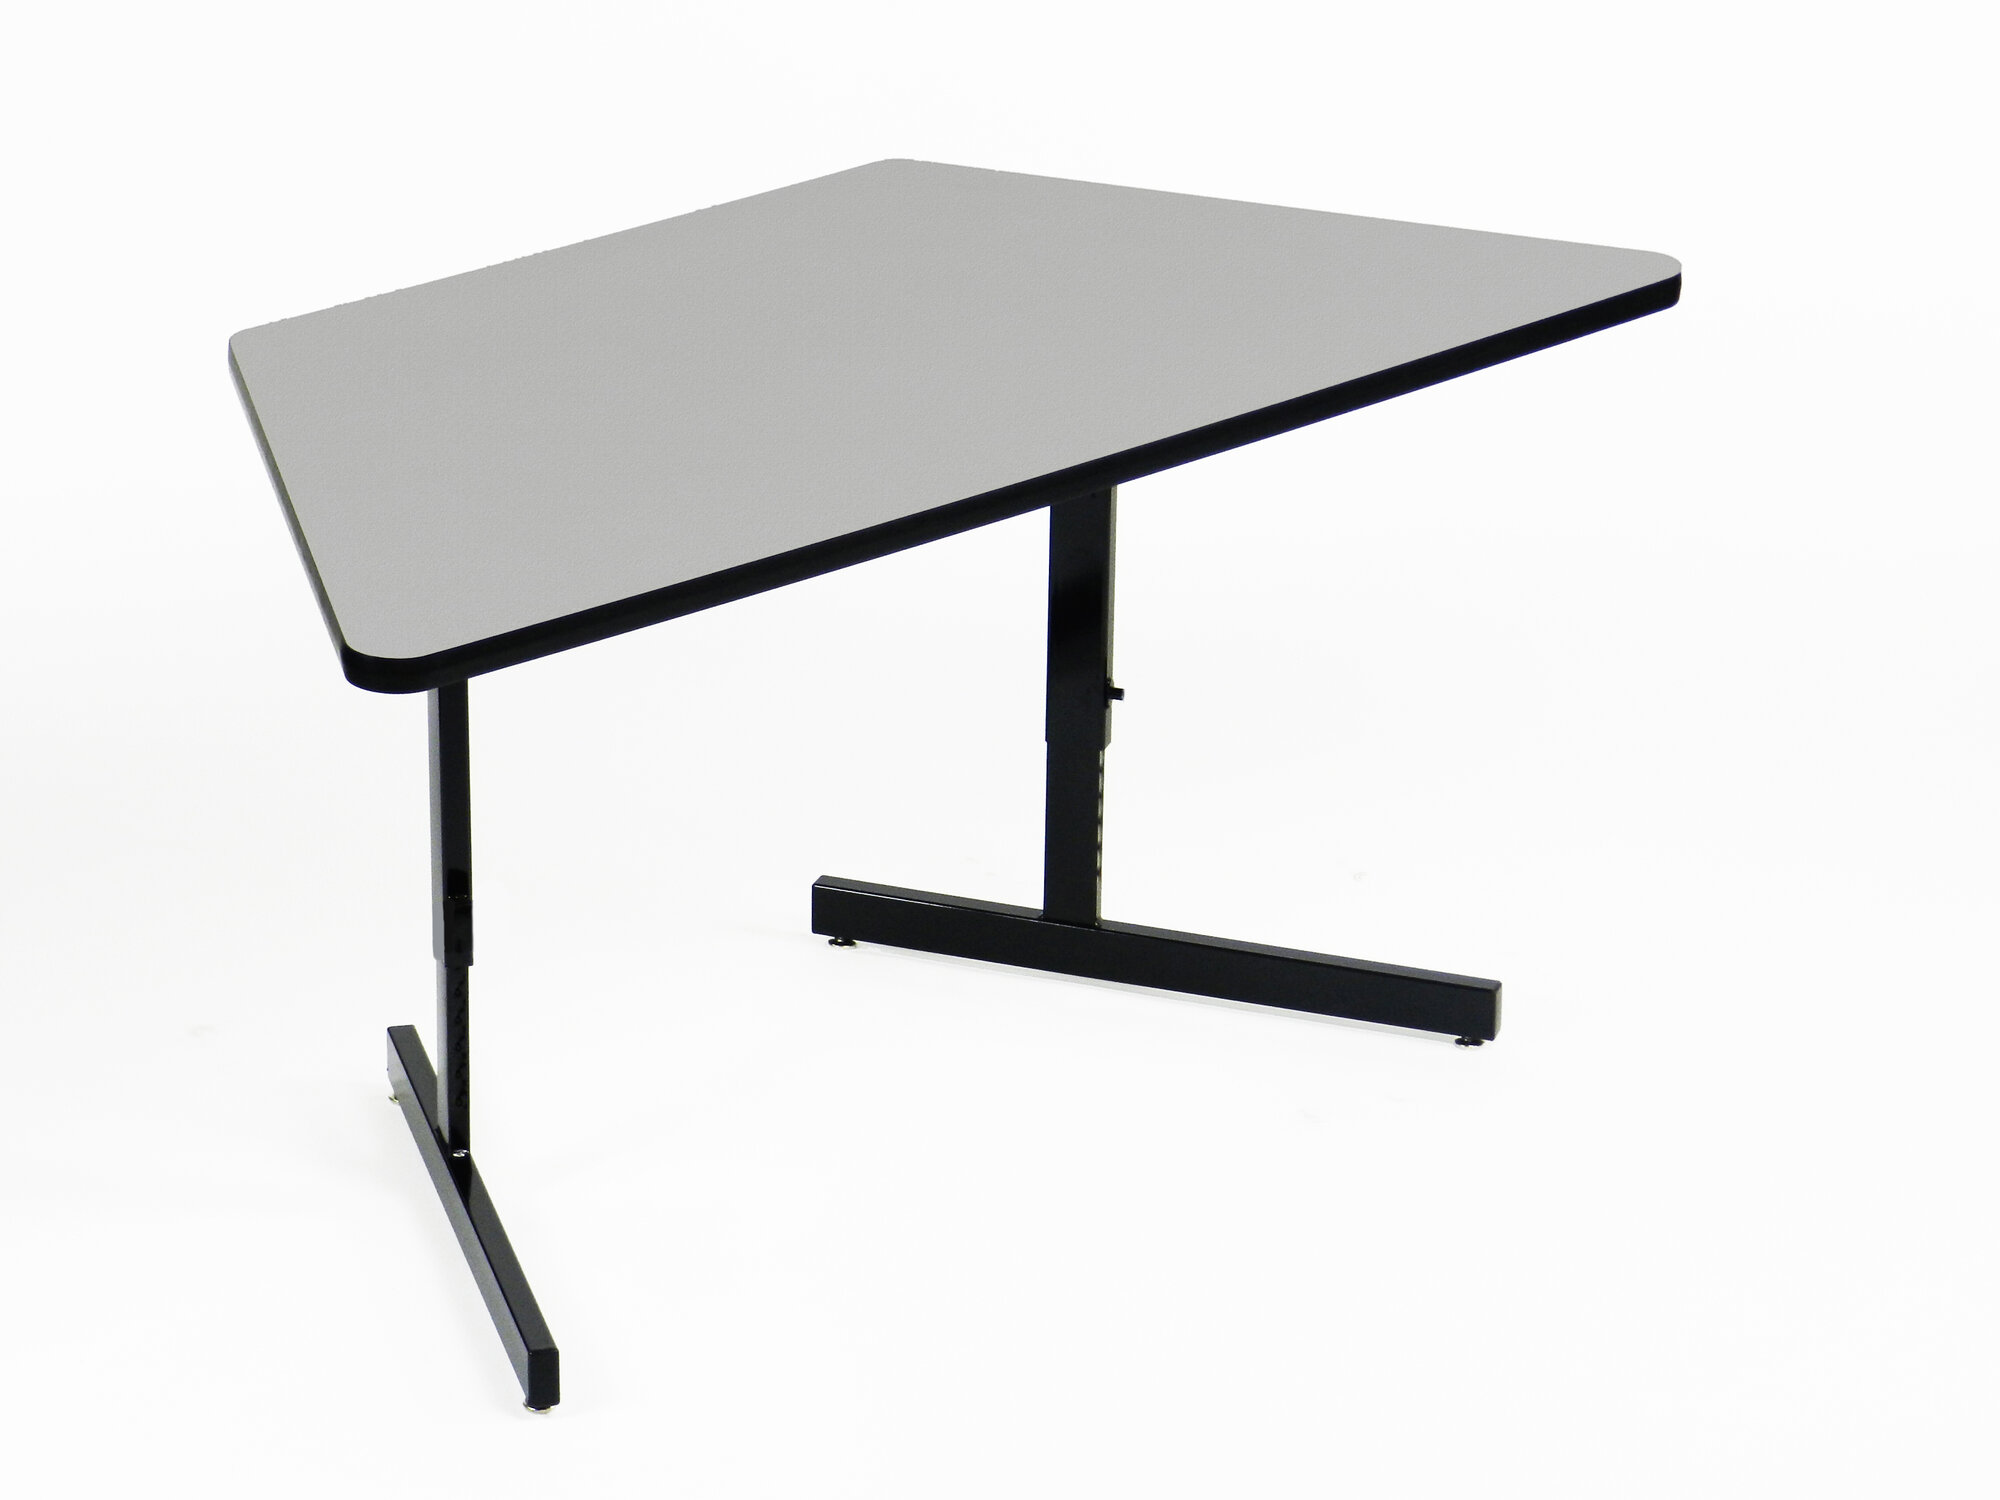 Correll inc 60 w training table with leg glides ebay - Table glides for legs ...